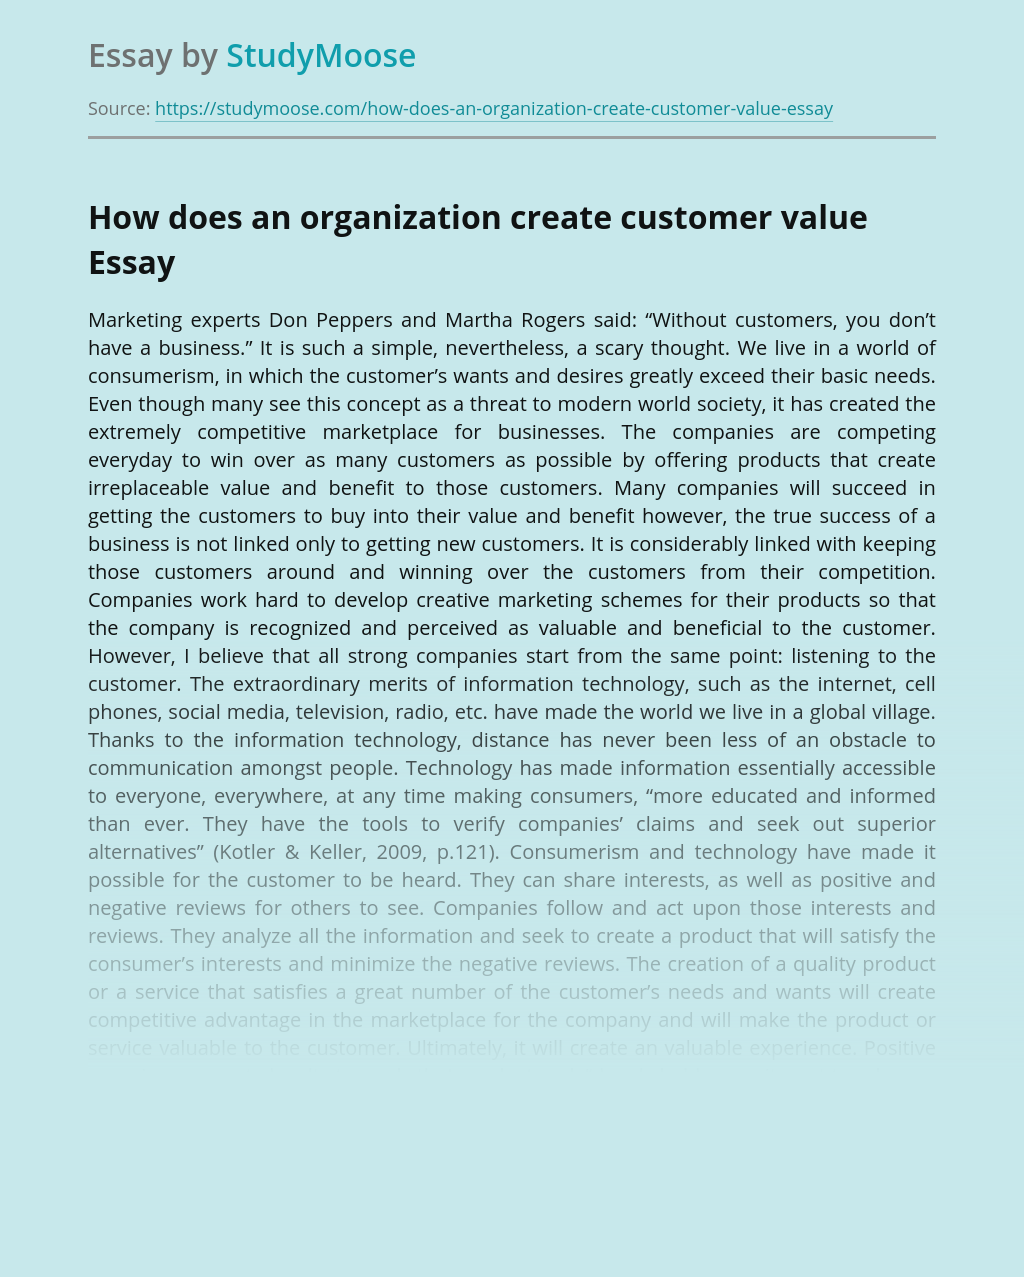 How does an organization create customer value